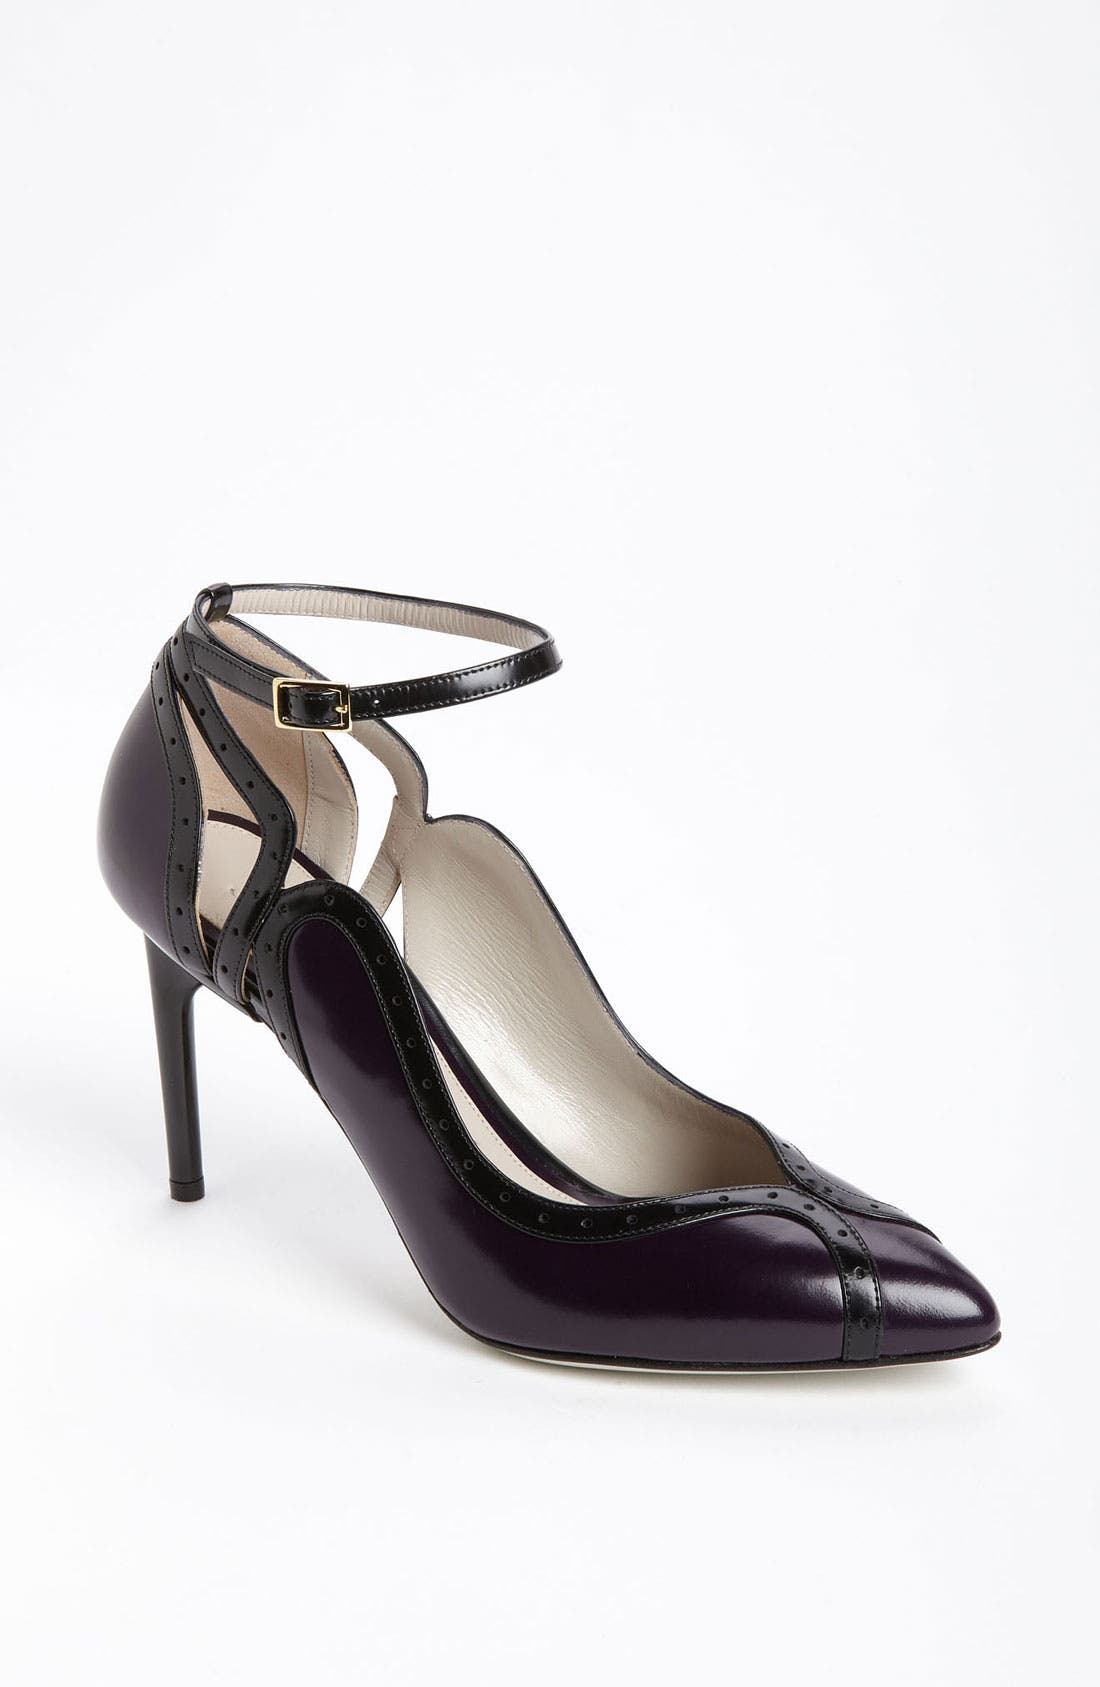 Alternate Image 1 Selected - Jason Wu 'Karen' Pump